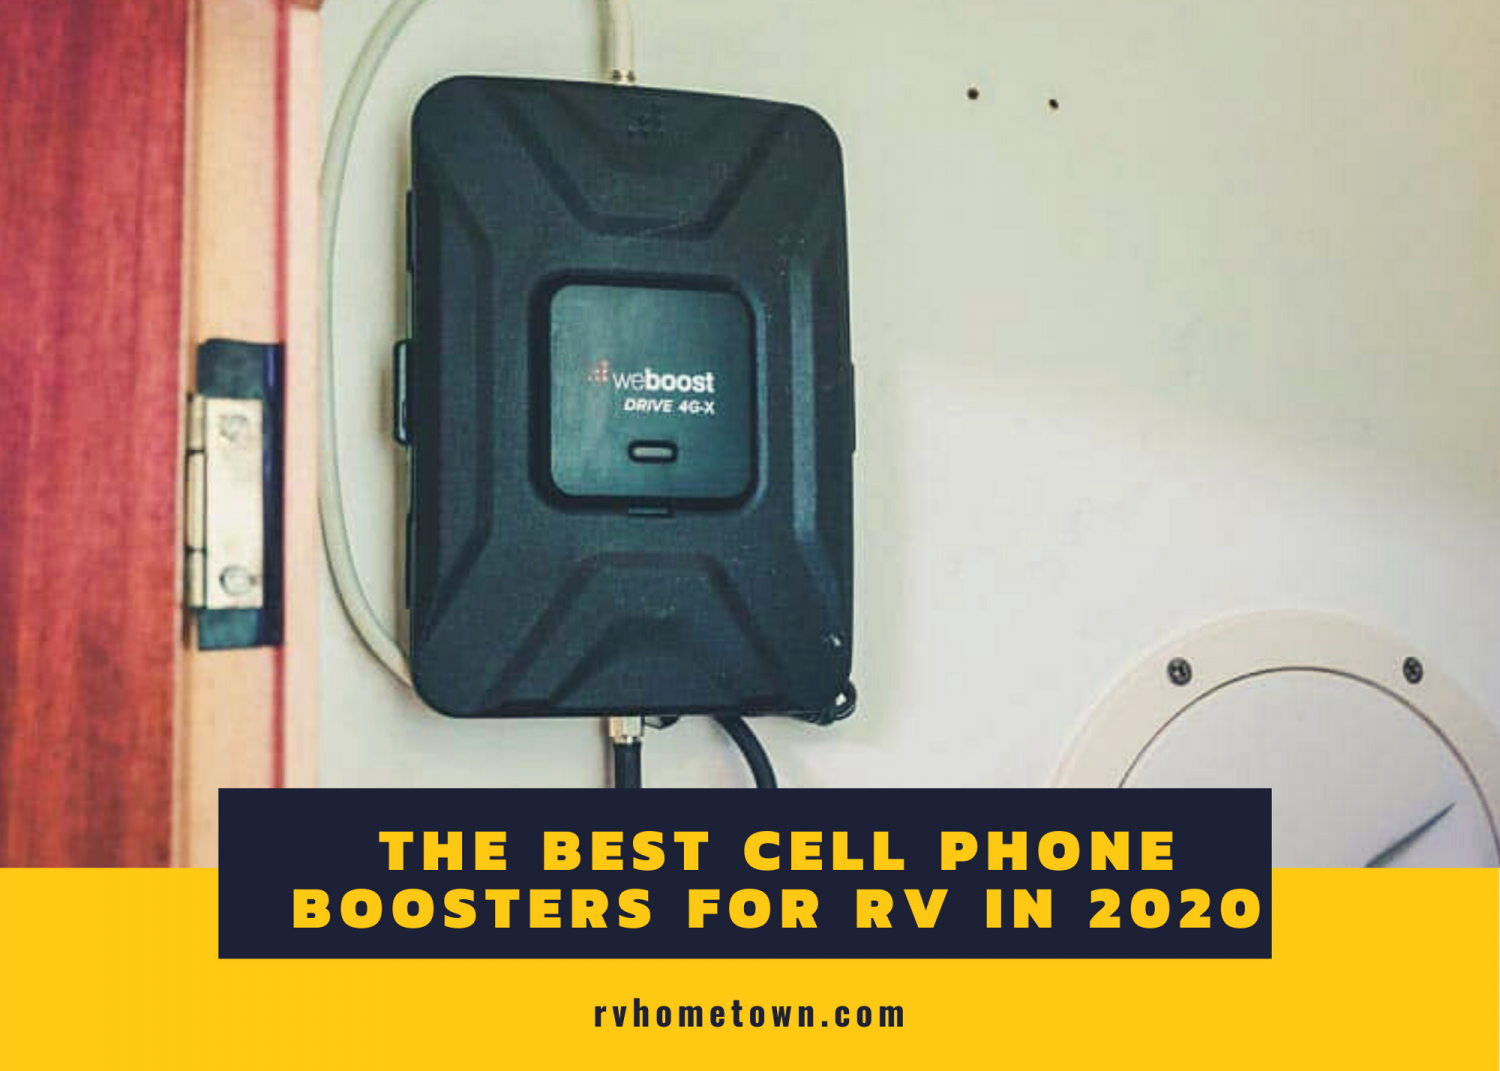 The Best Cell Phone Boosters for RV in 2020 Infographic